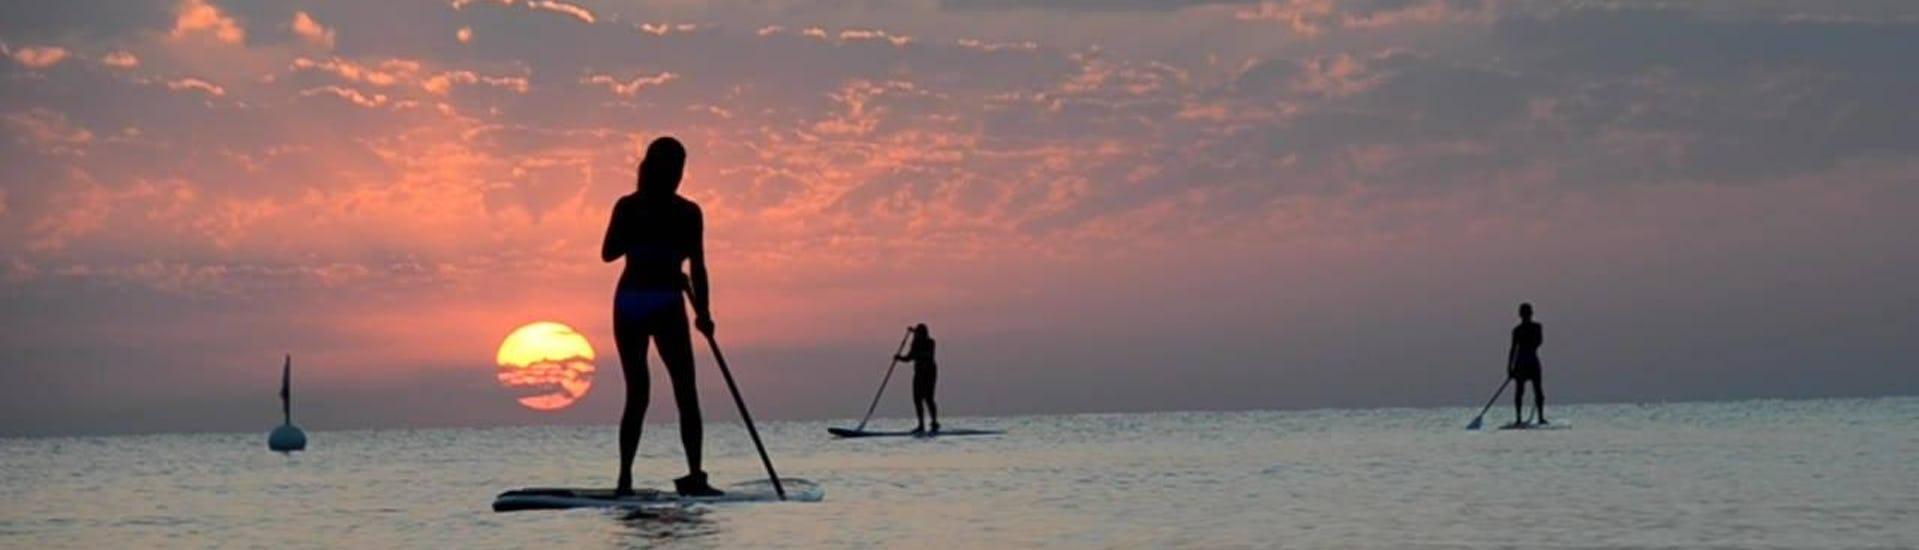 SUP Lesson for Kids & Adults - Beginners